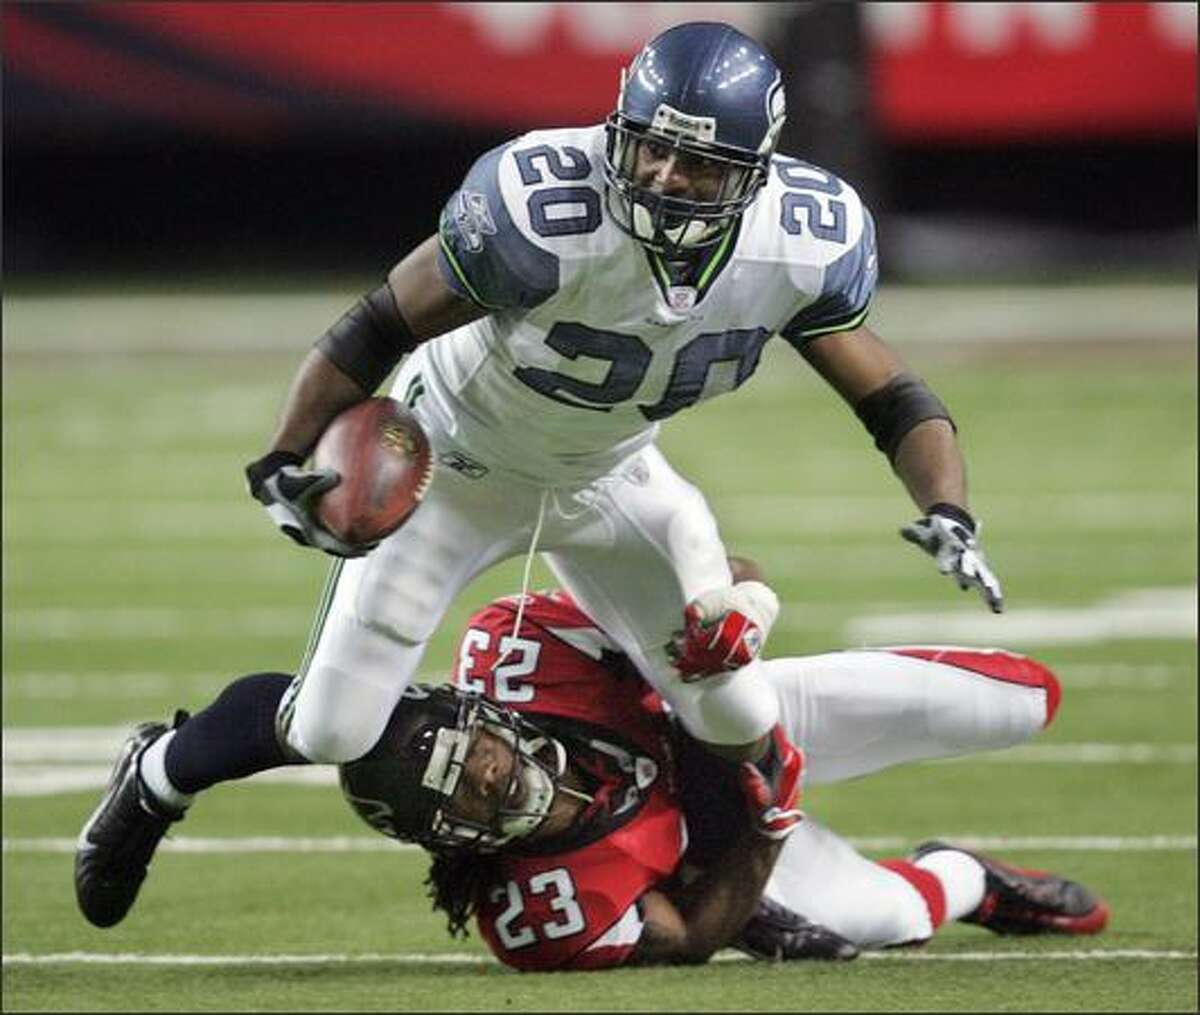 Seattle Seahawks running back Maurice Morris is stopped by Atlanta Falcons' Chris Houston after making a catch during the first quarter.